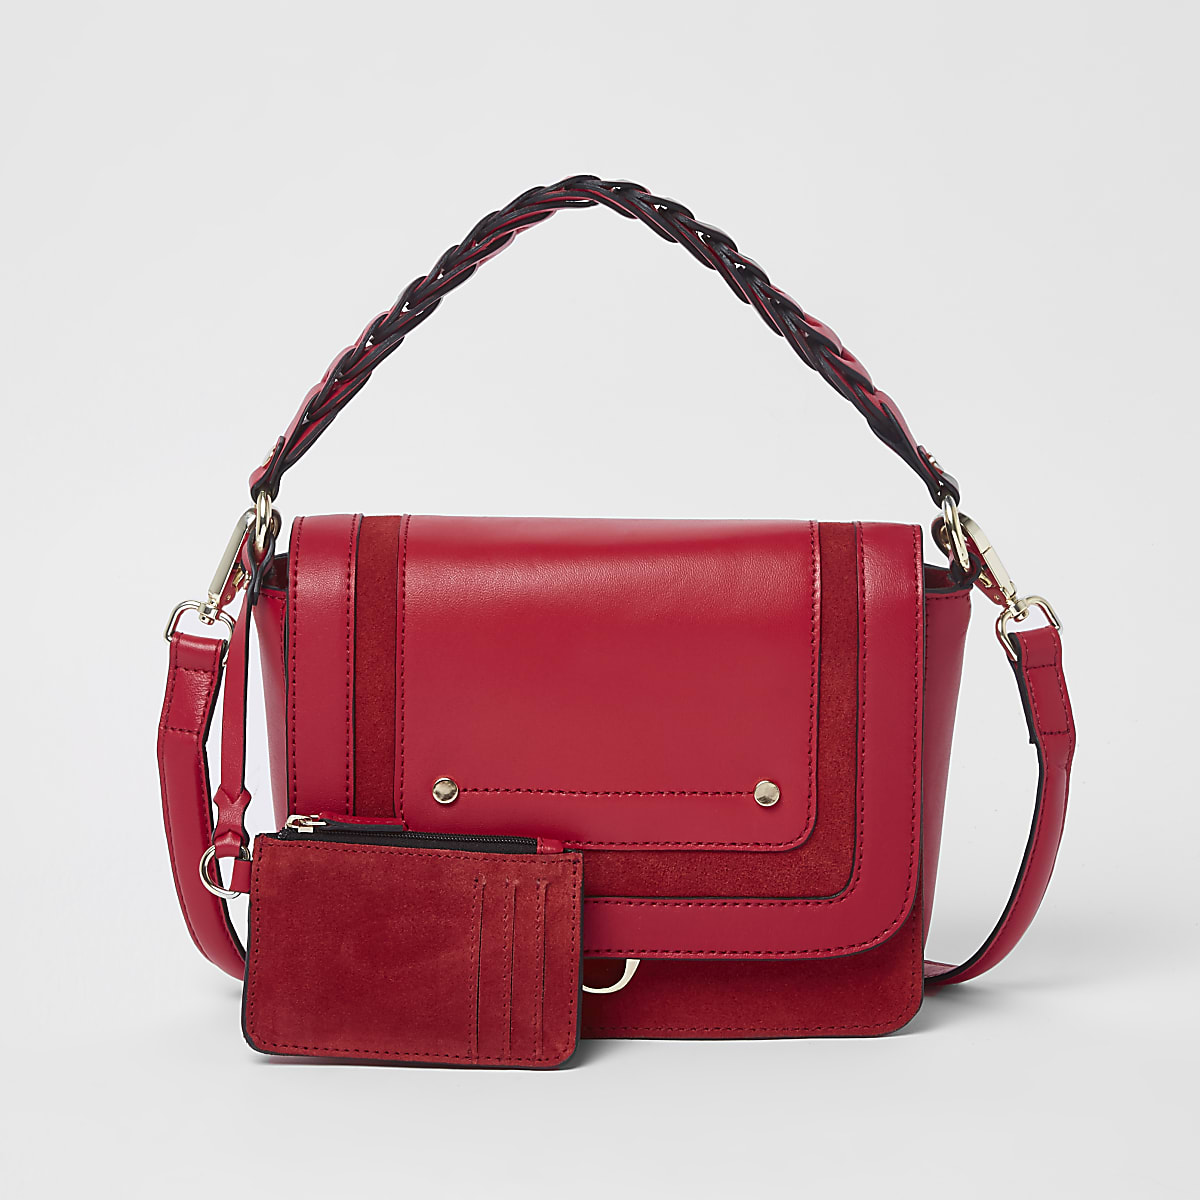 Red leather braided flap front cross body bag